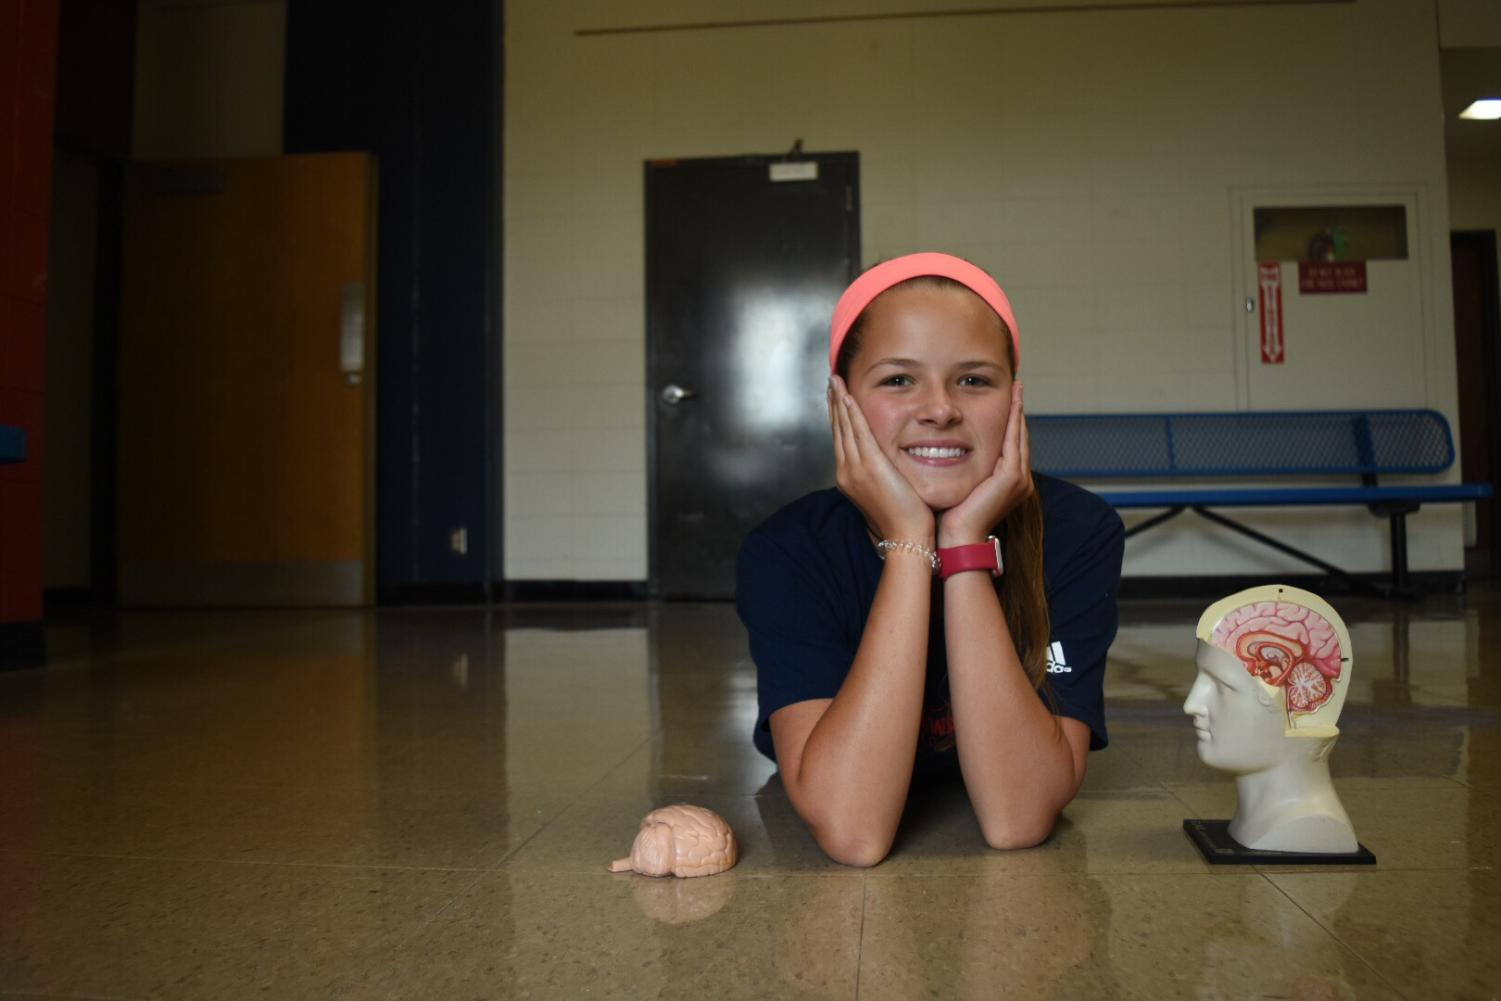 Freshman Giselle Bauer poses with a model of the human brain. Bauer has a brain tumor that causes seizures and has undergone four surgeries to minimize the tumor's size and effects.